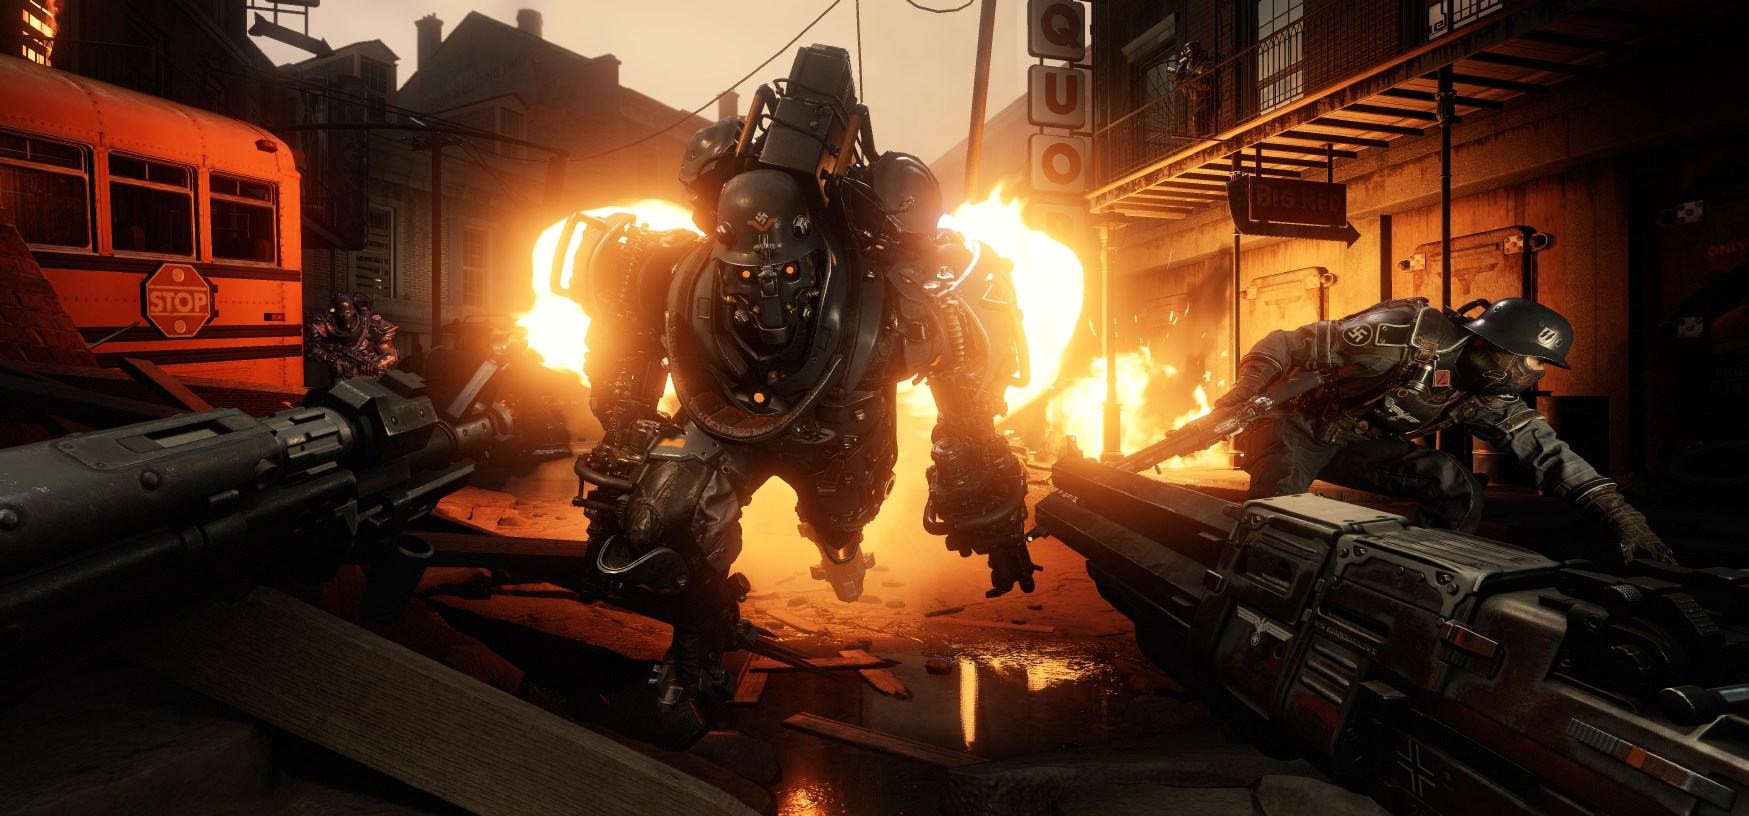 Wolfenstein 2 system requirements and PC-specific features revealed